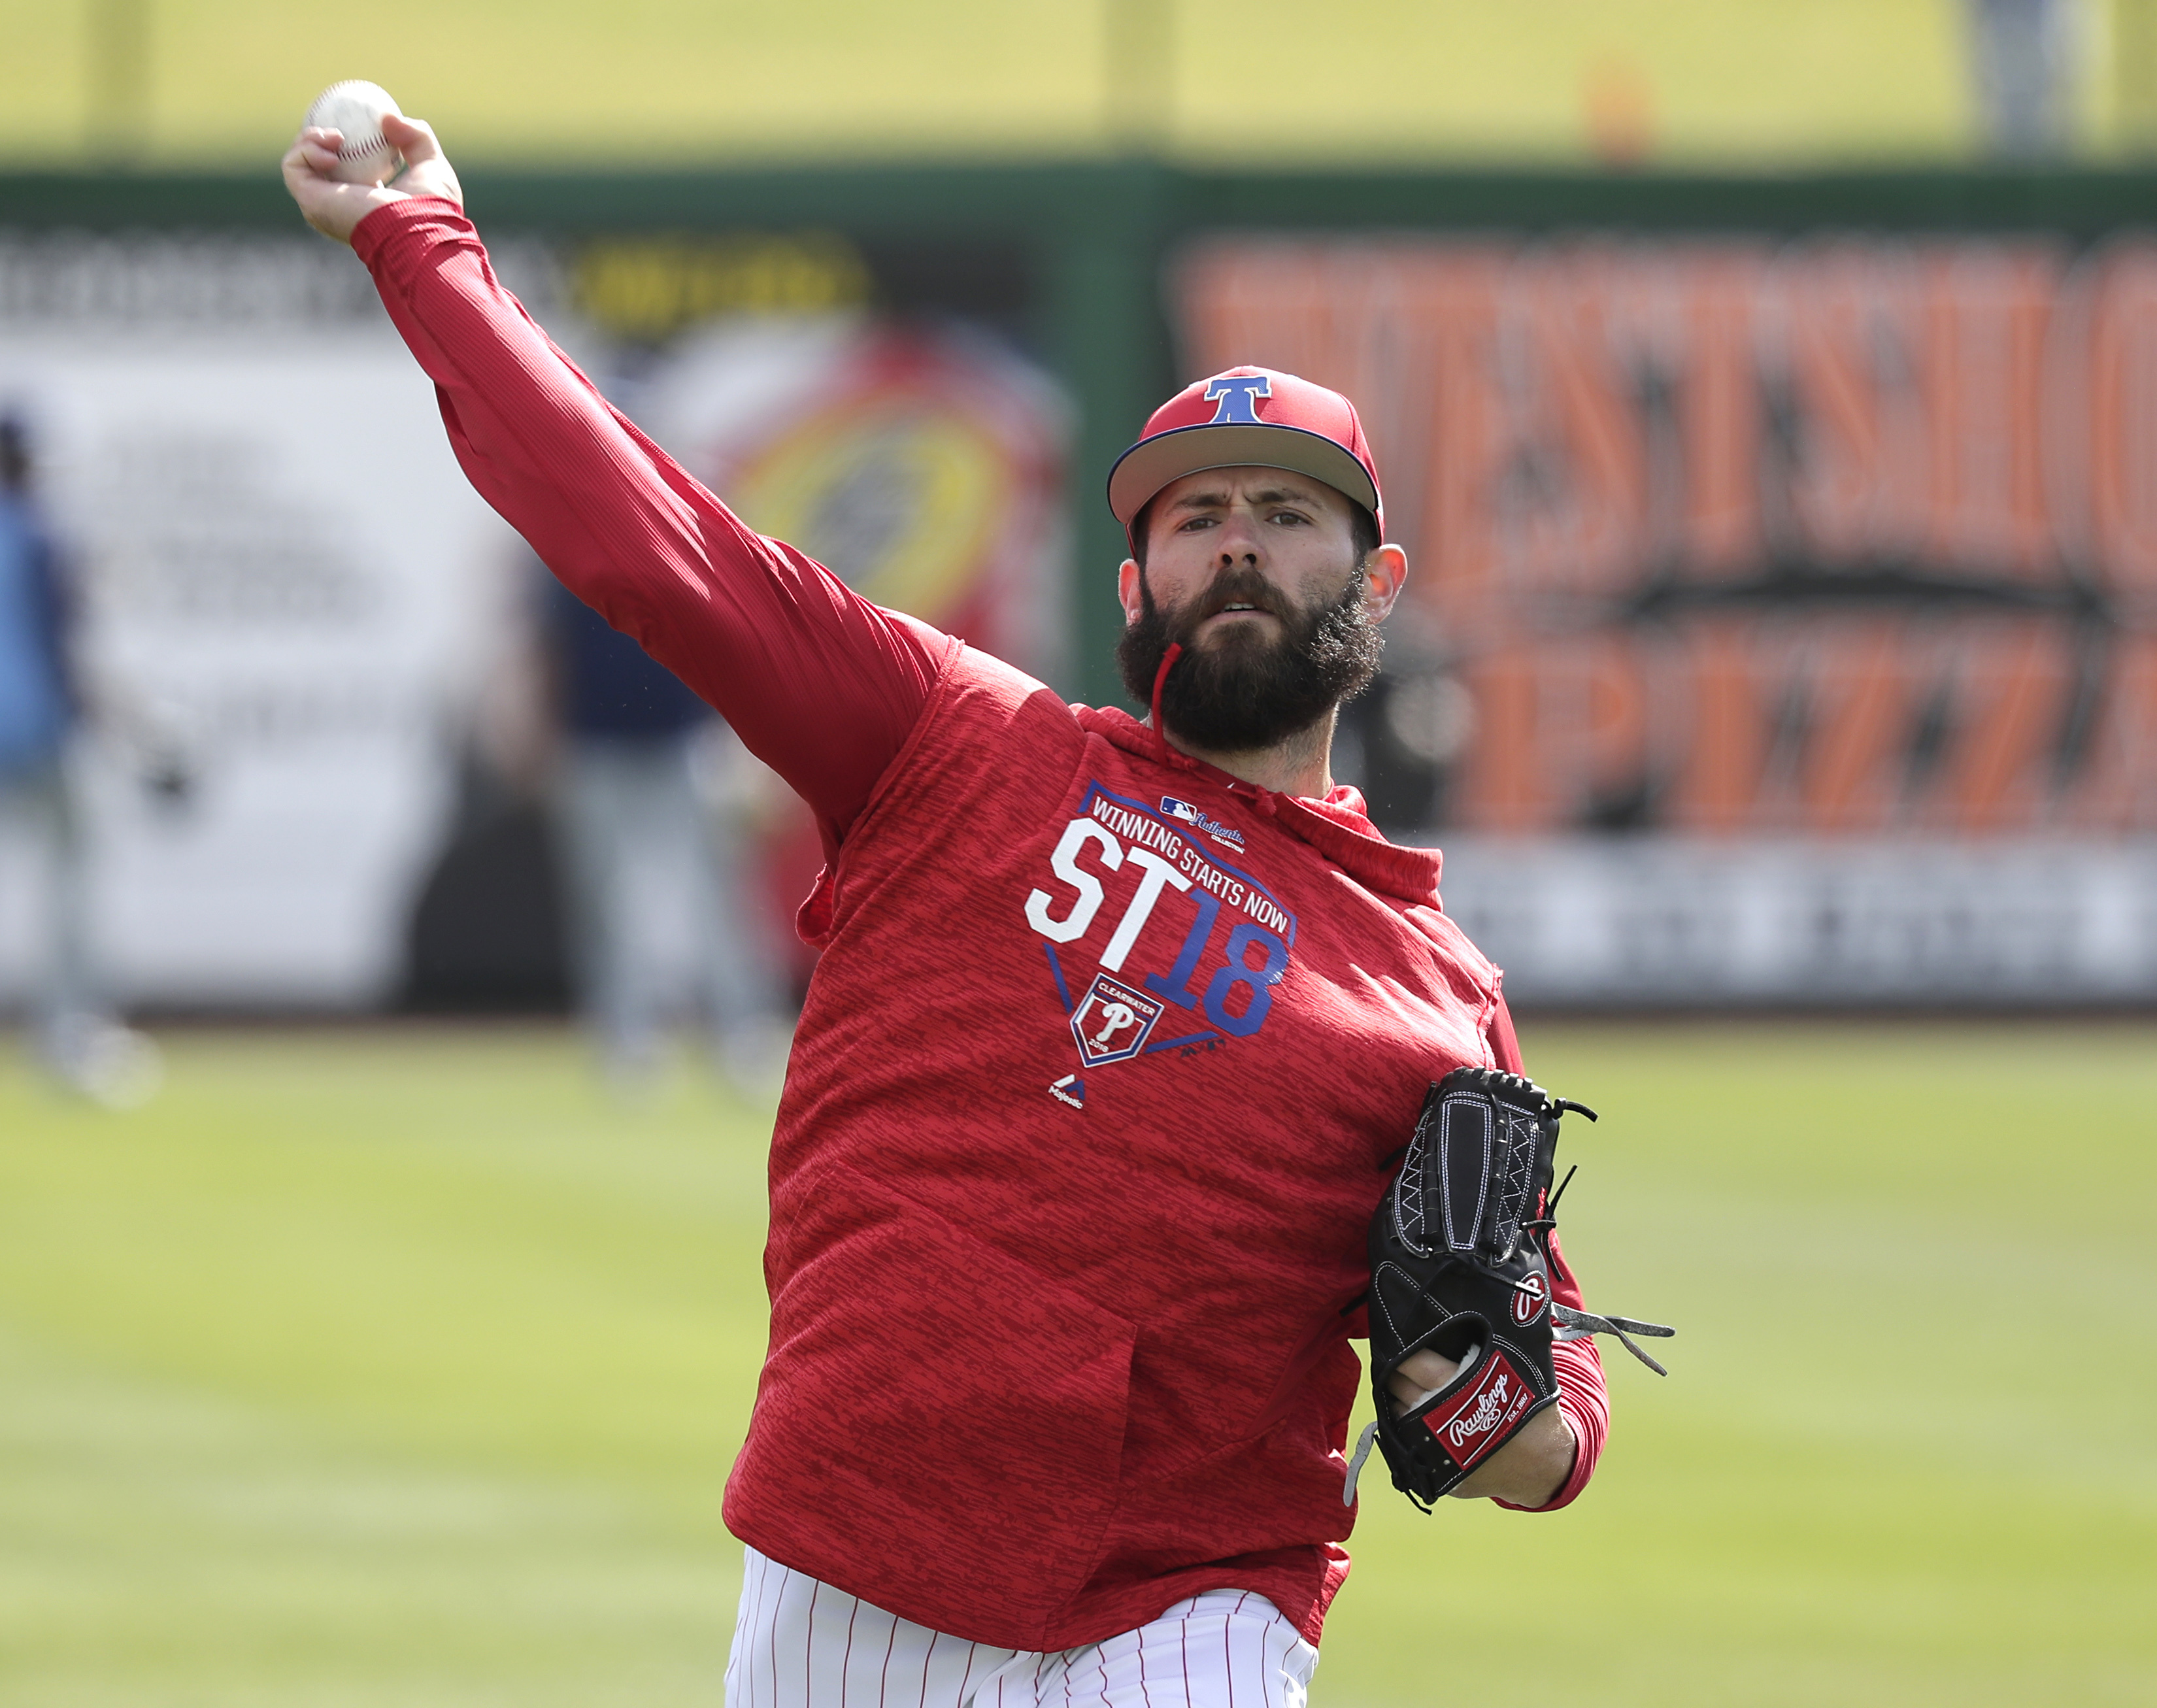 Phillies pitcher Jake Arrieta throws during a work out before a spring training game on Tuesday.